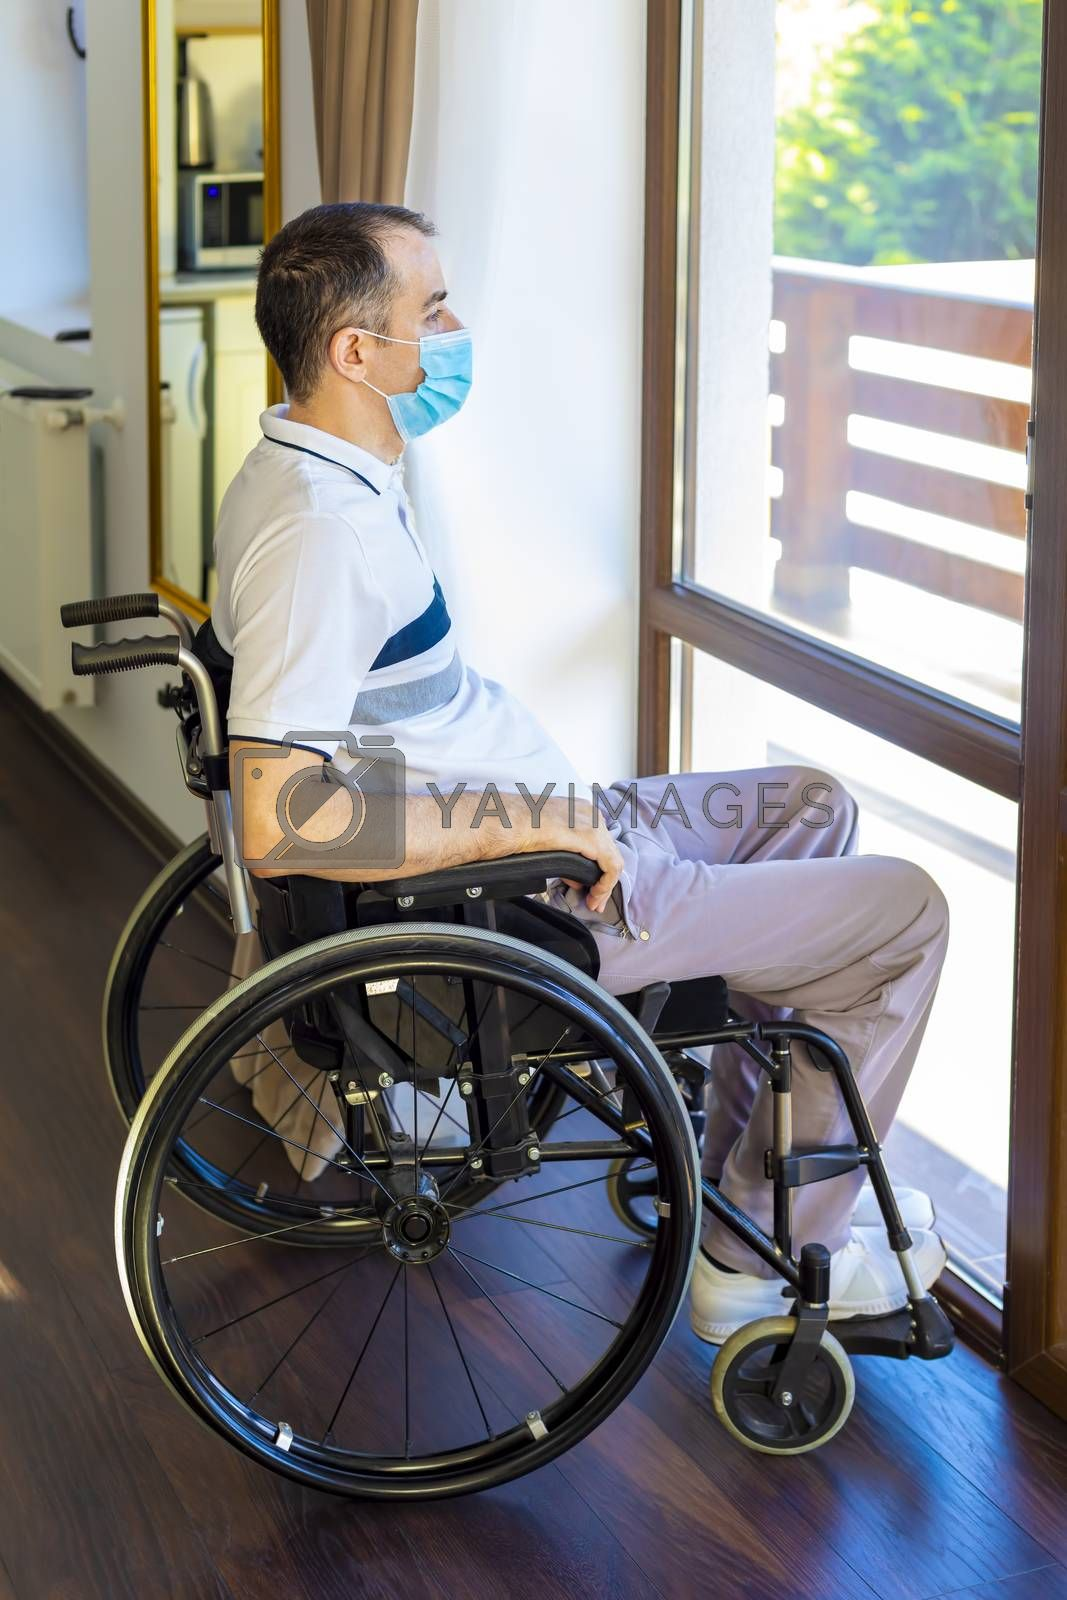 Lonely young man wearing face mask sitting in a wheelchair alone looking out the window. Focus on his face.